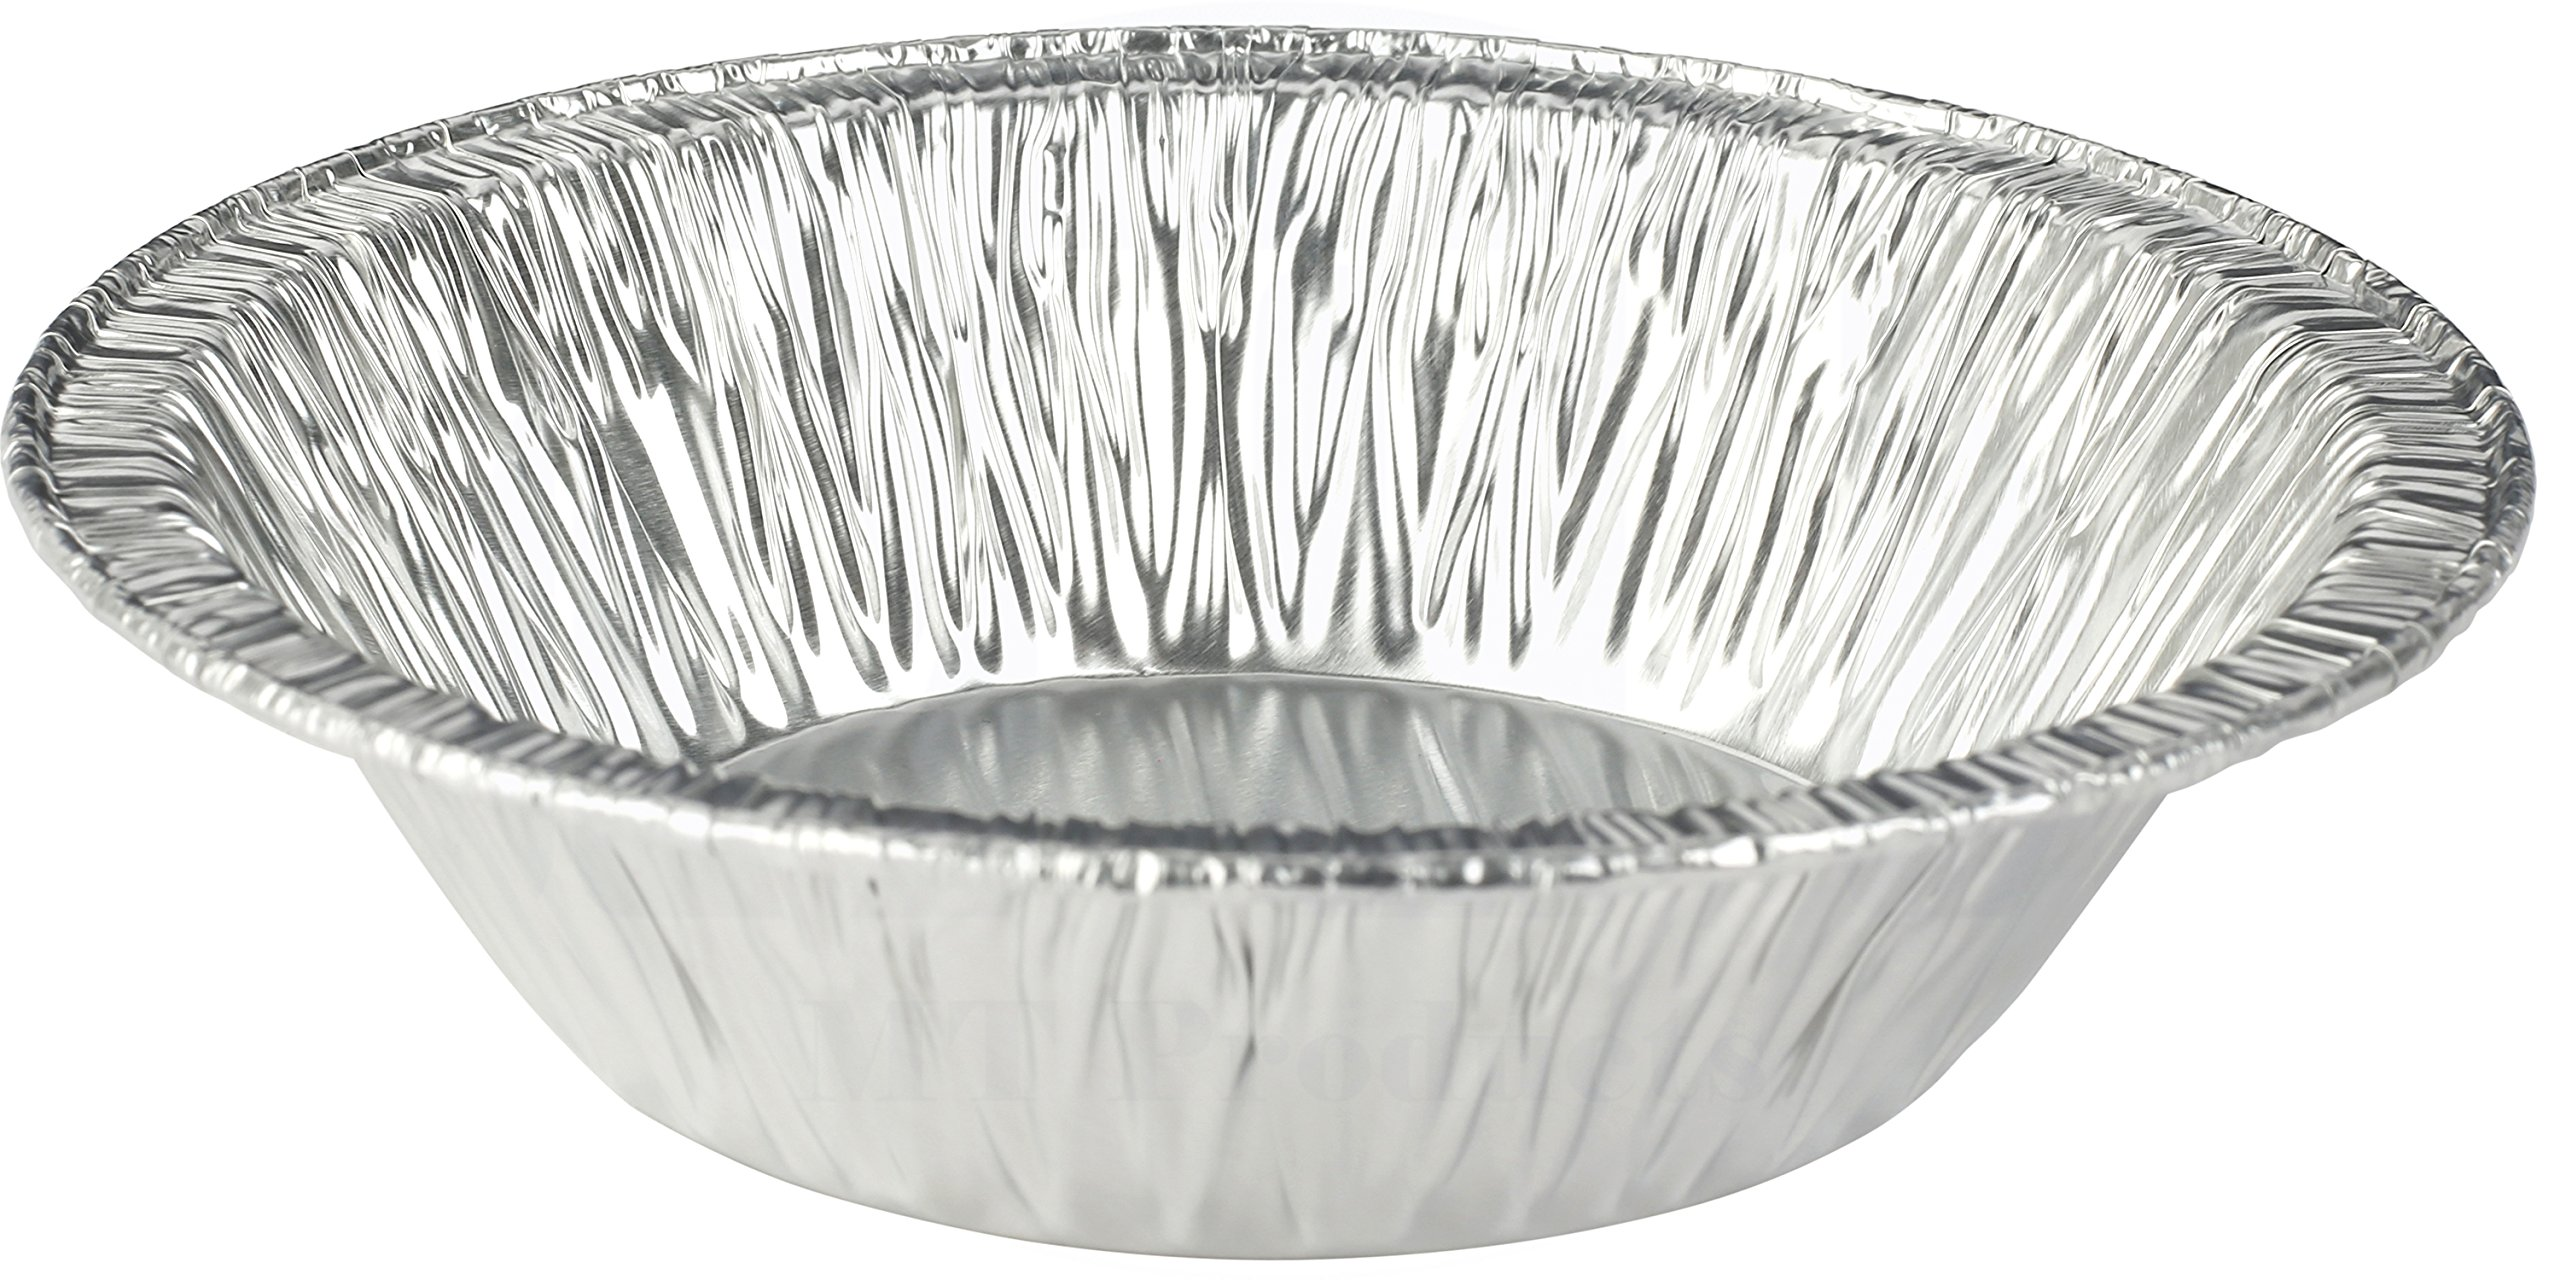 MT Products 5 Inch Disposable Aluminum Foil Tart/Pie Pan 1 1/4'' Deep - (50 Pieces) by MT Products